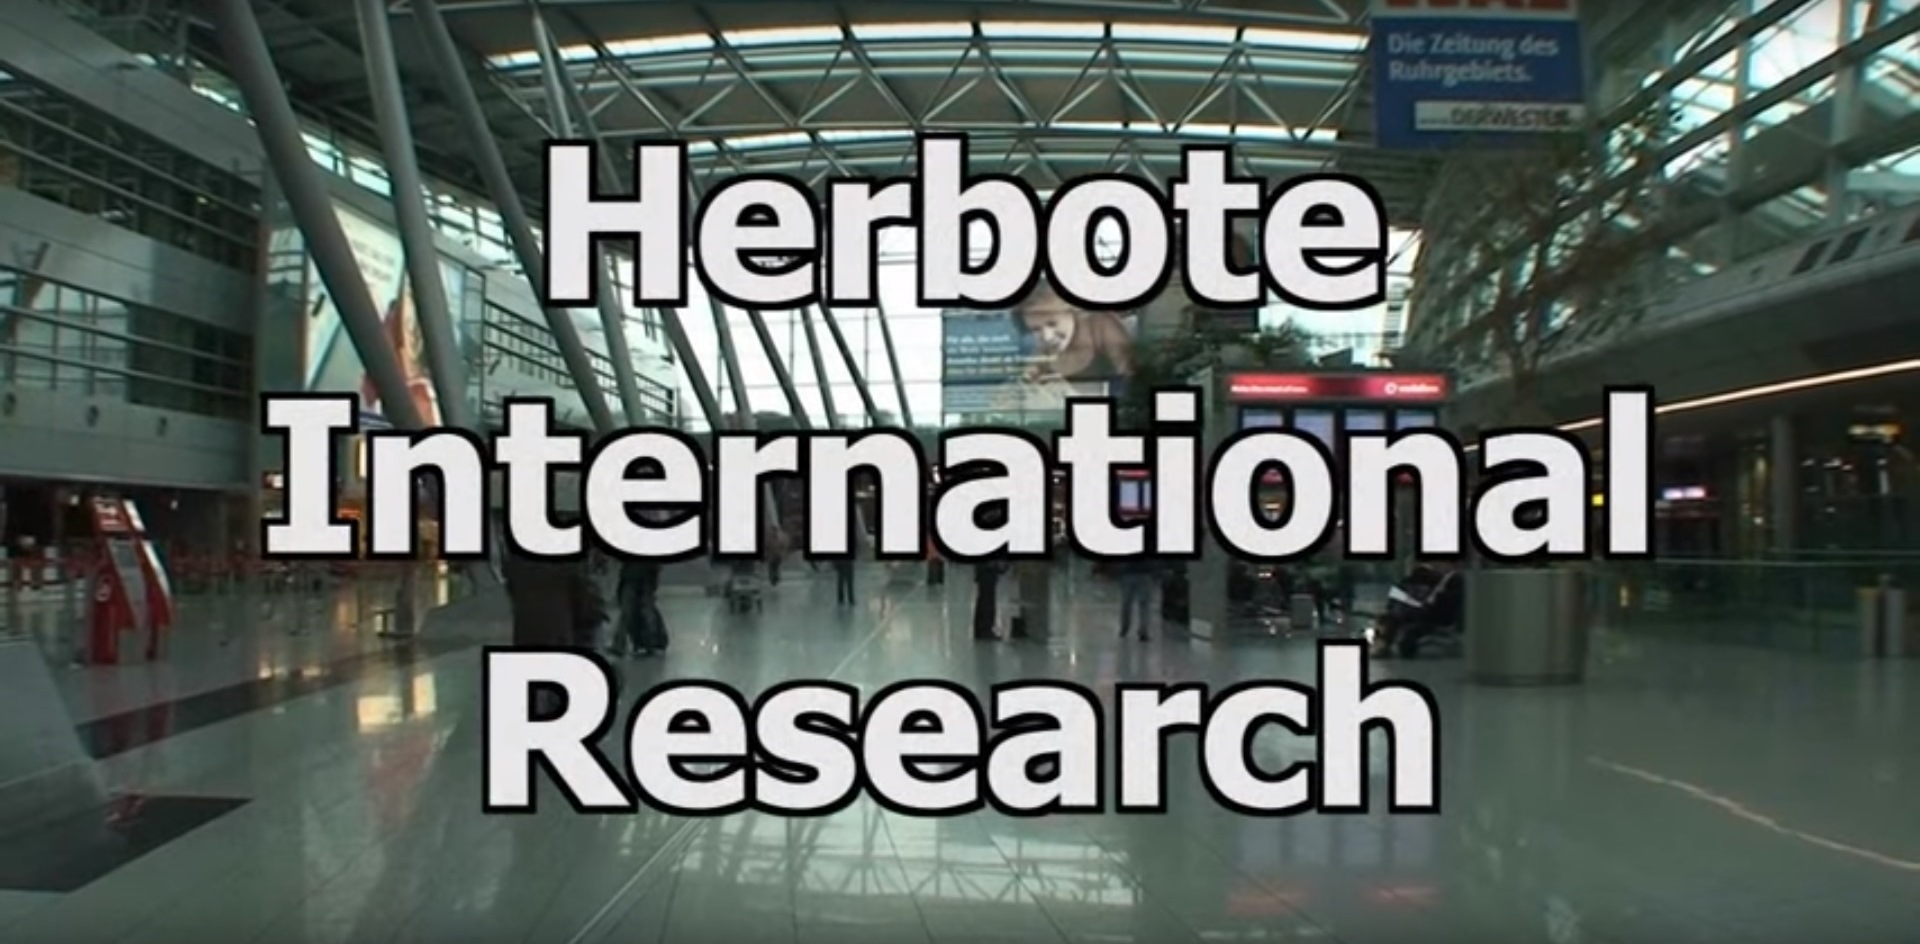 Image Video Herbote International Research